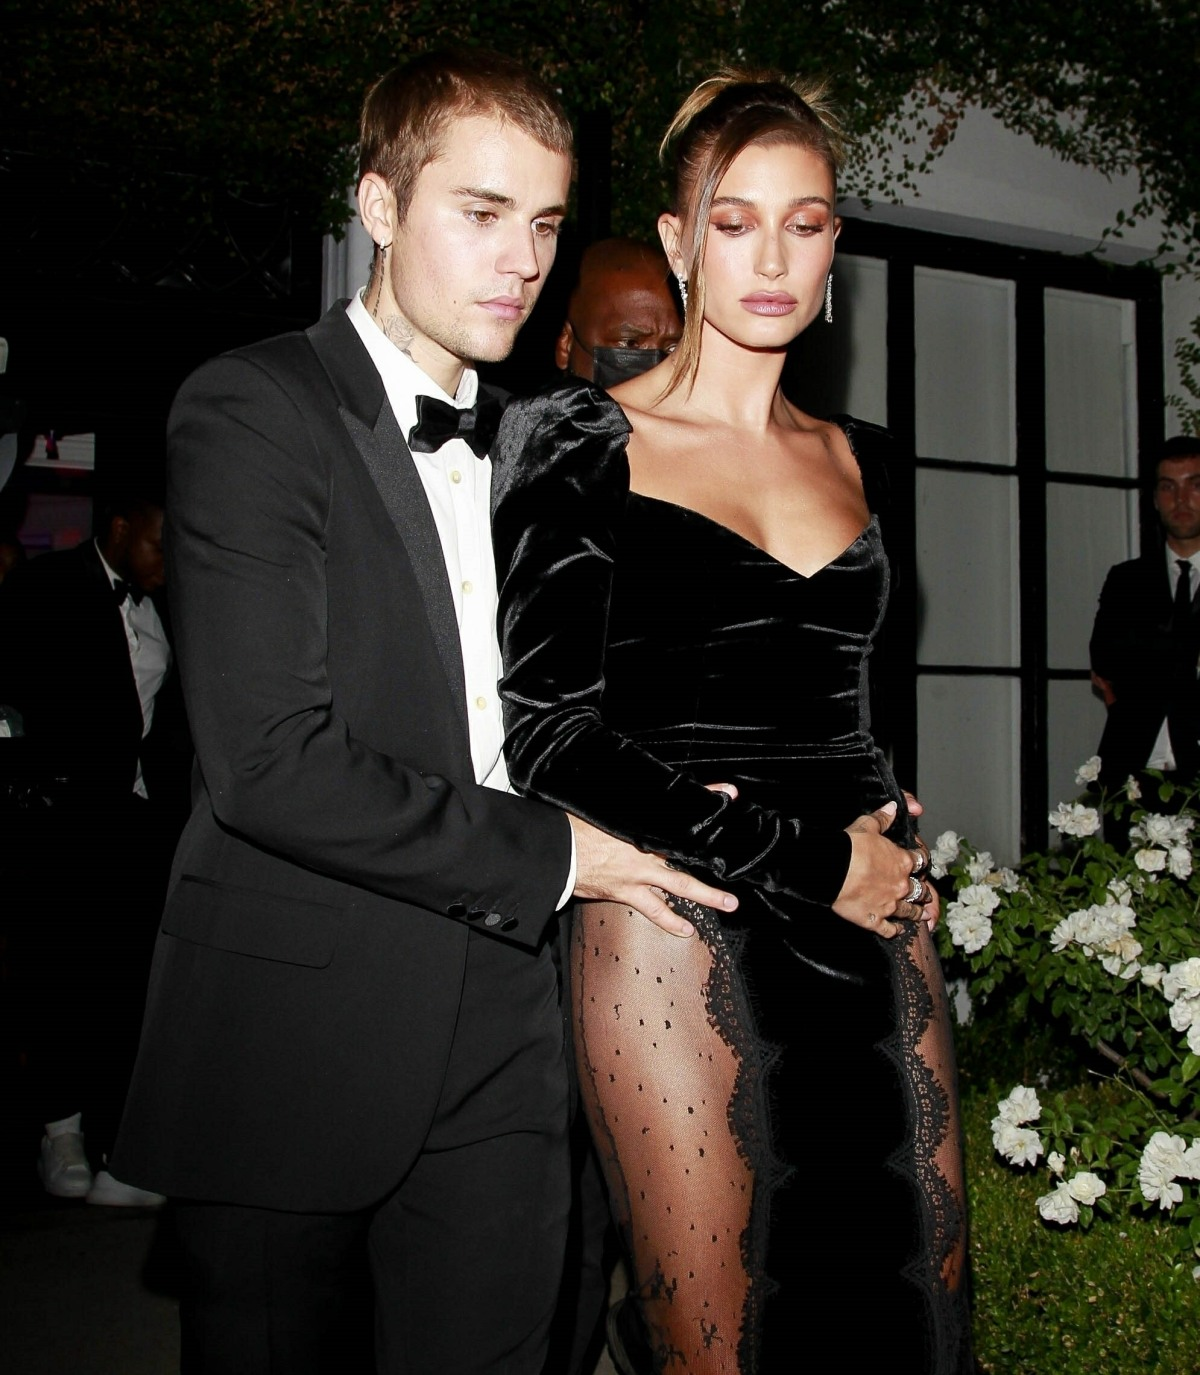 Justin Bieber and Hailey Bieber keep close while leaving an Art Gallery party in West Hollywood